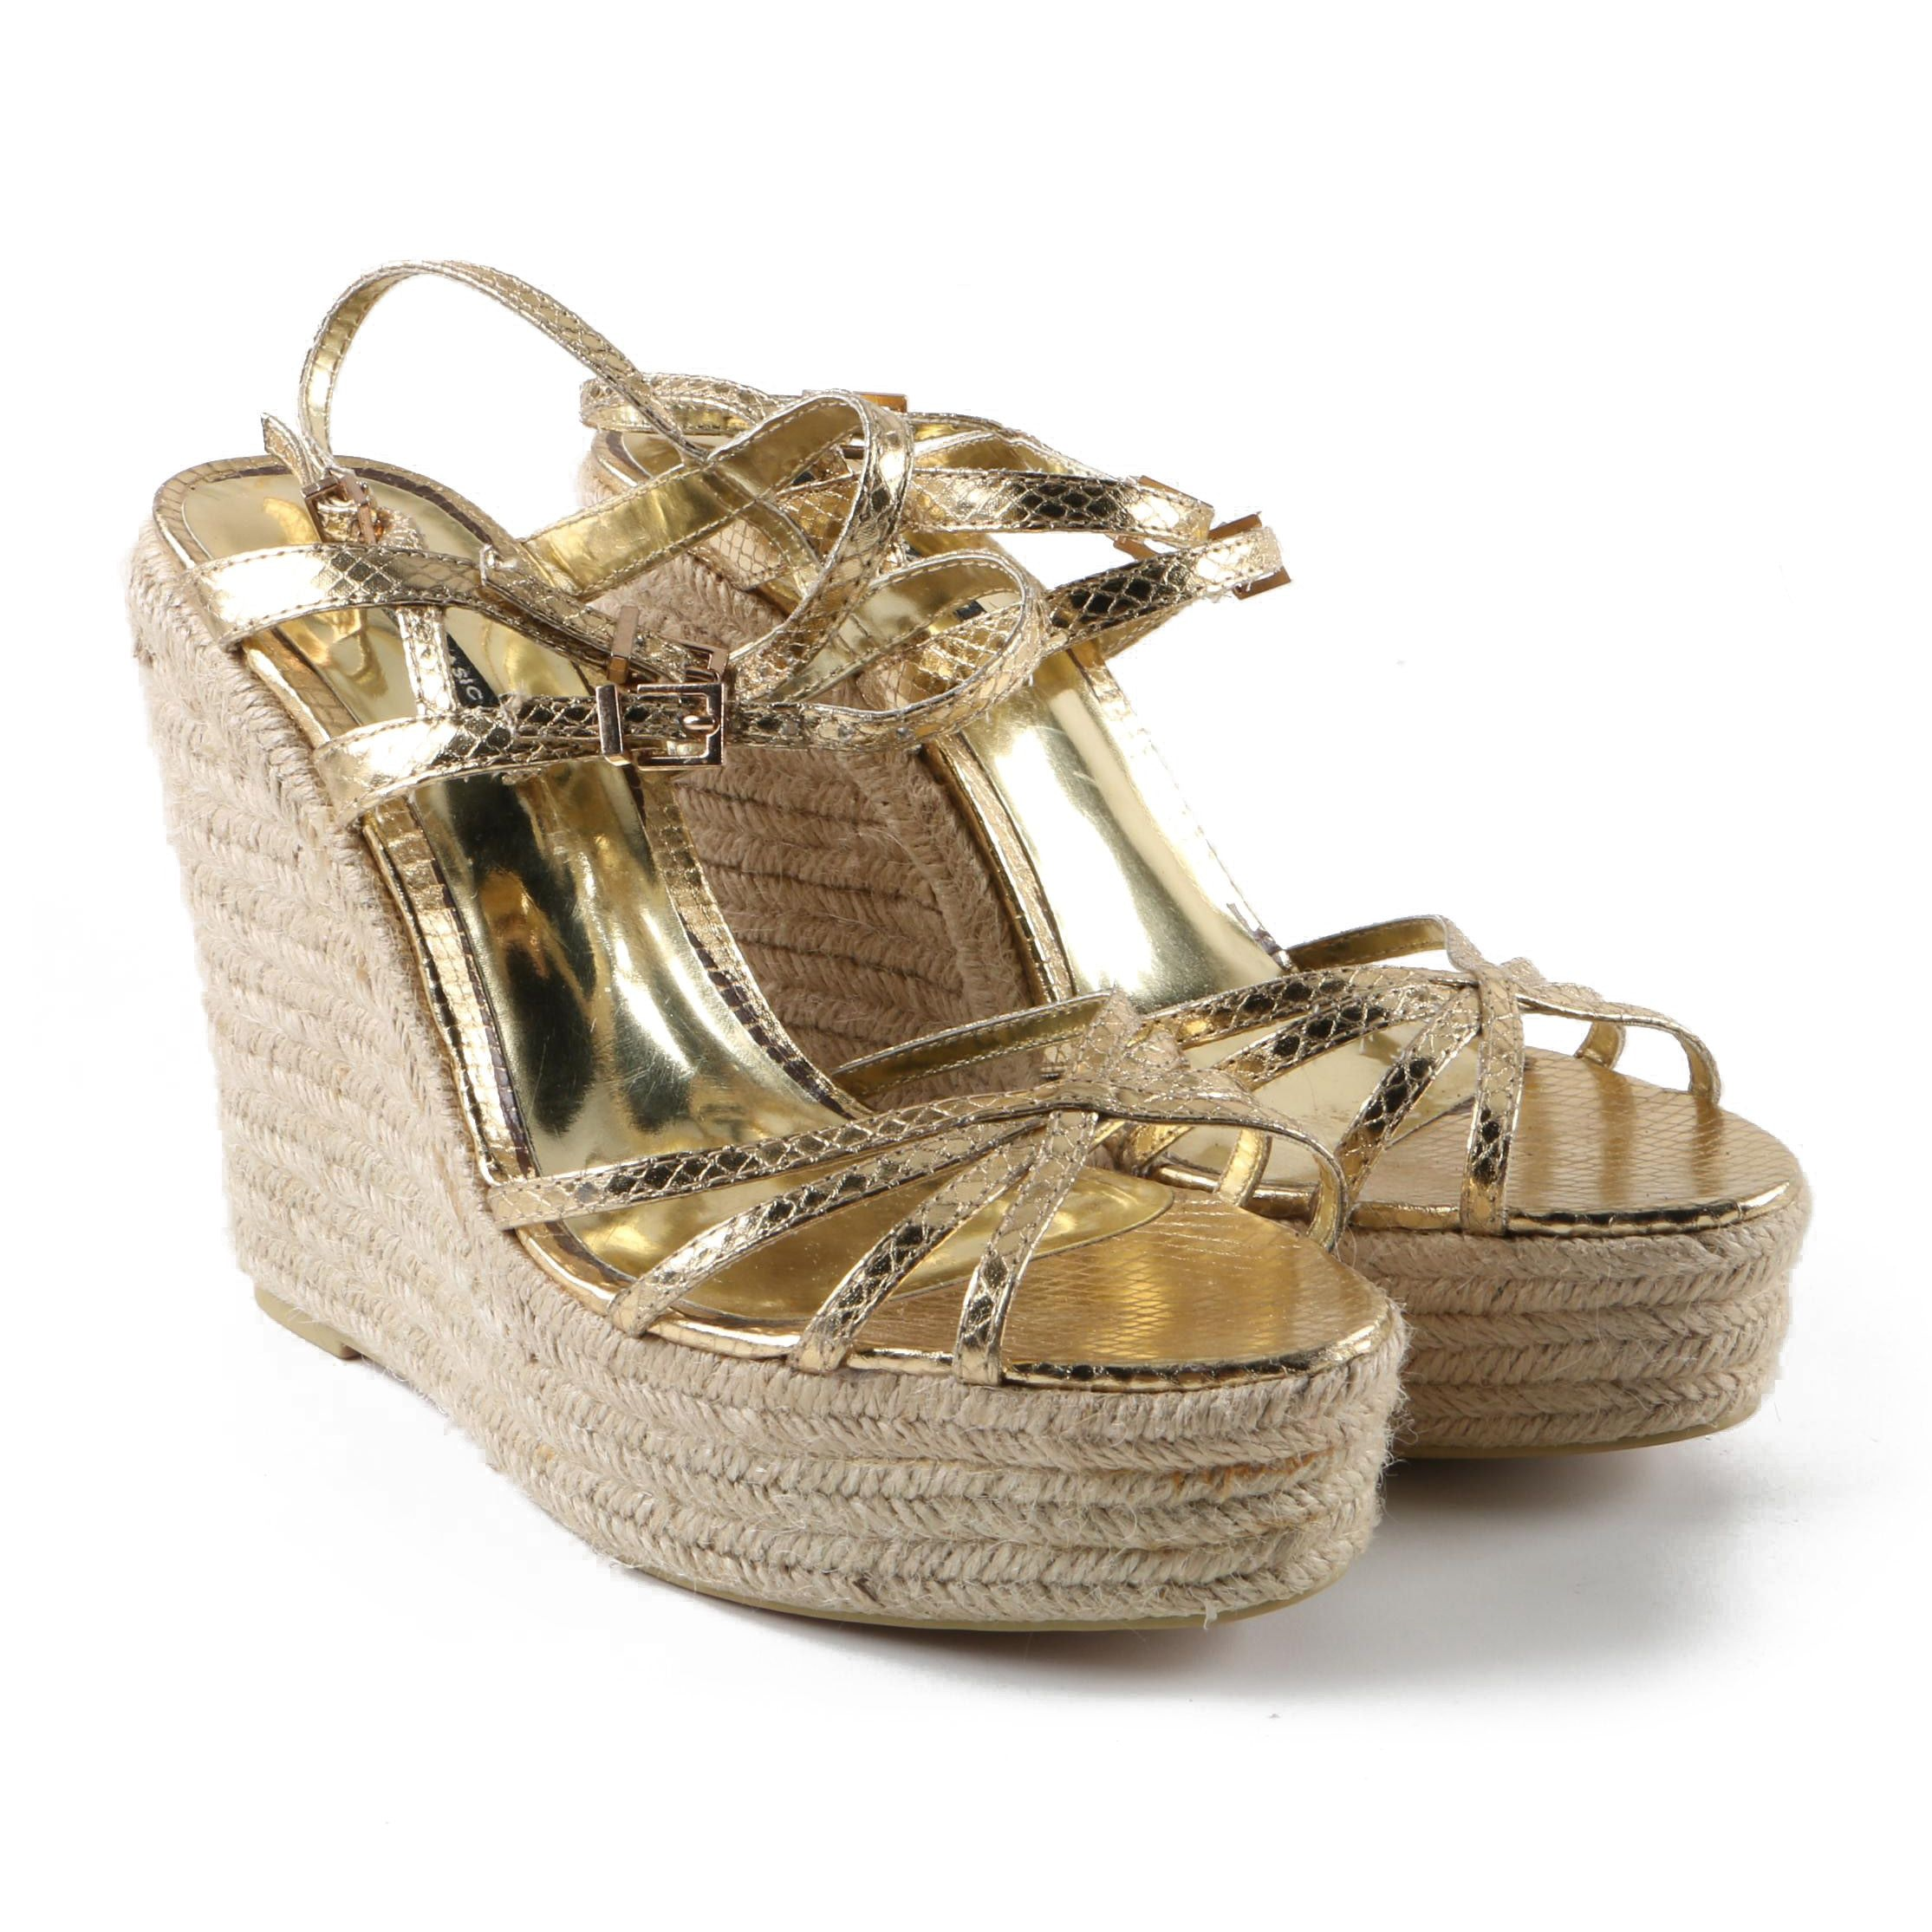 Zara Basic Metallic Gold Tone Leather Espadrille Wedge Sandals